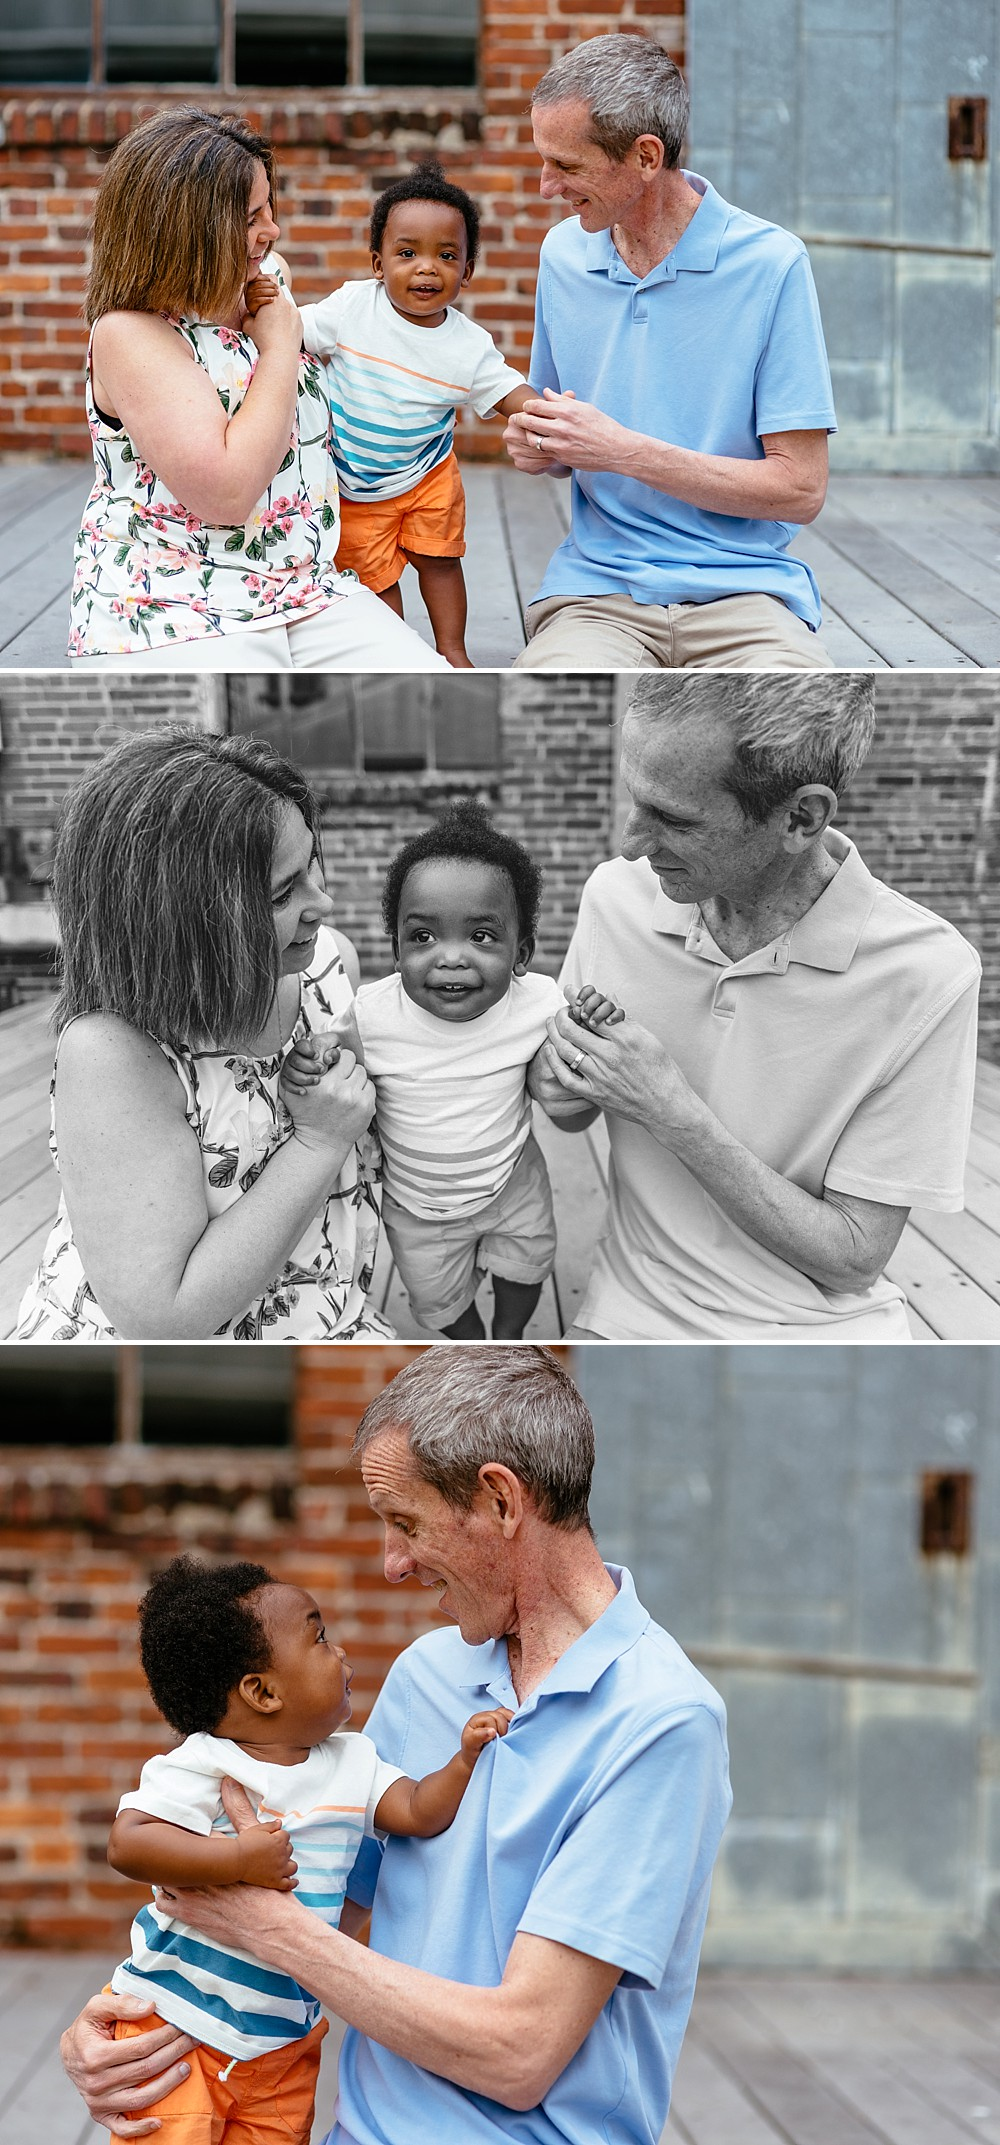 Baby boy who is adopted with his parents on his milestone birthday photo session at an old factory with brick.